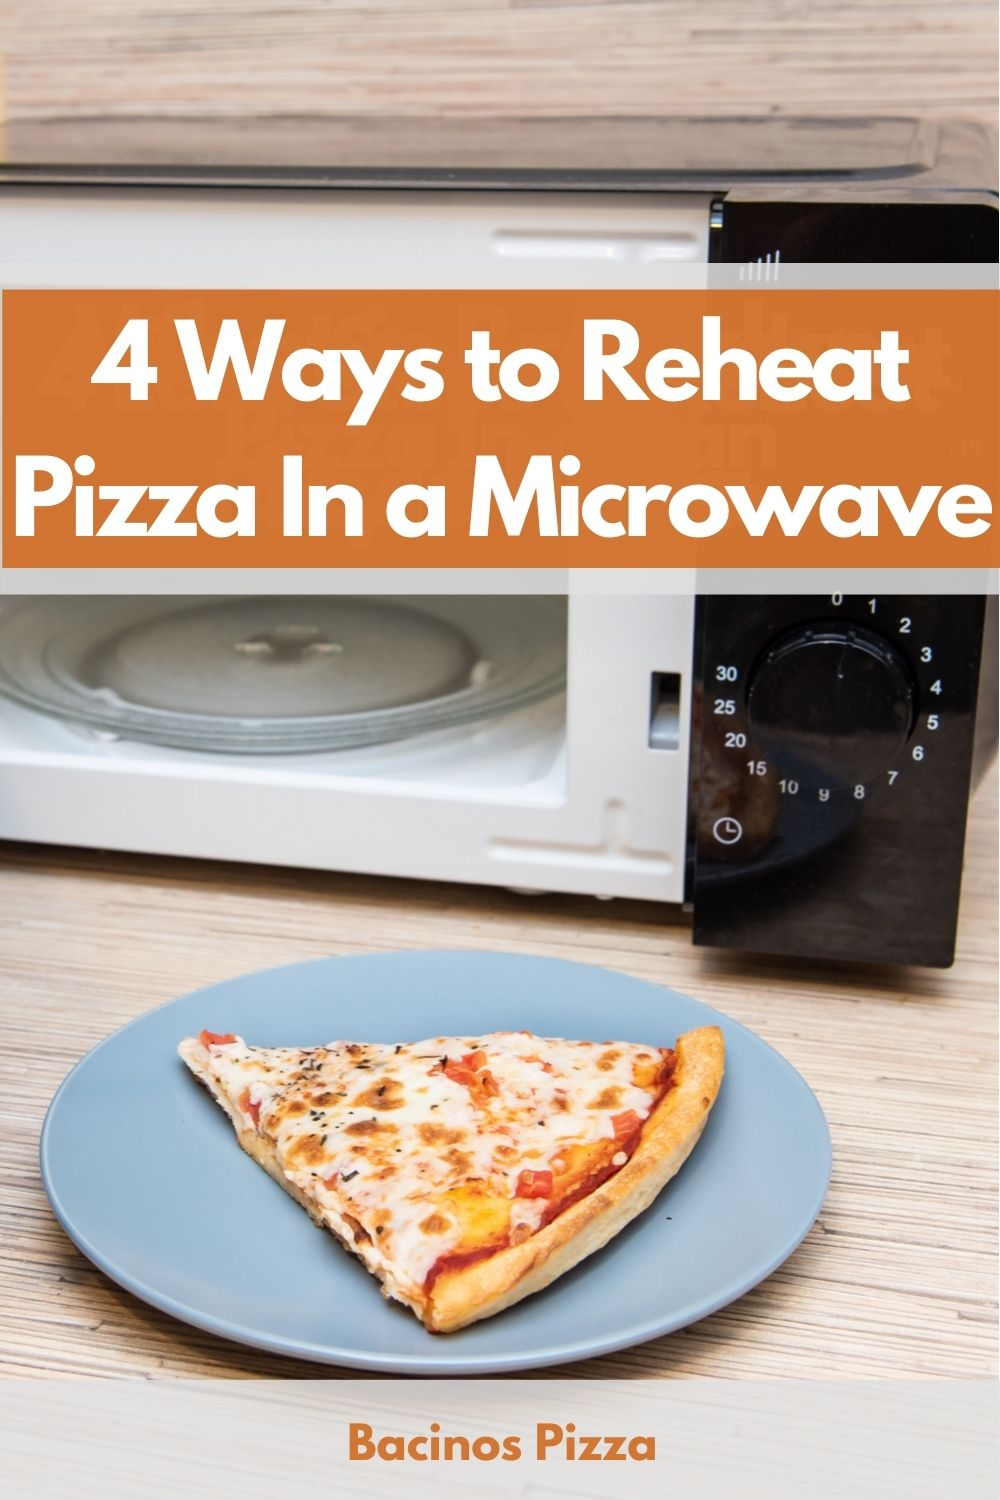 4 Ways to Reheat Pizza In a Microwave pin